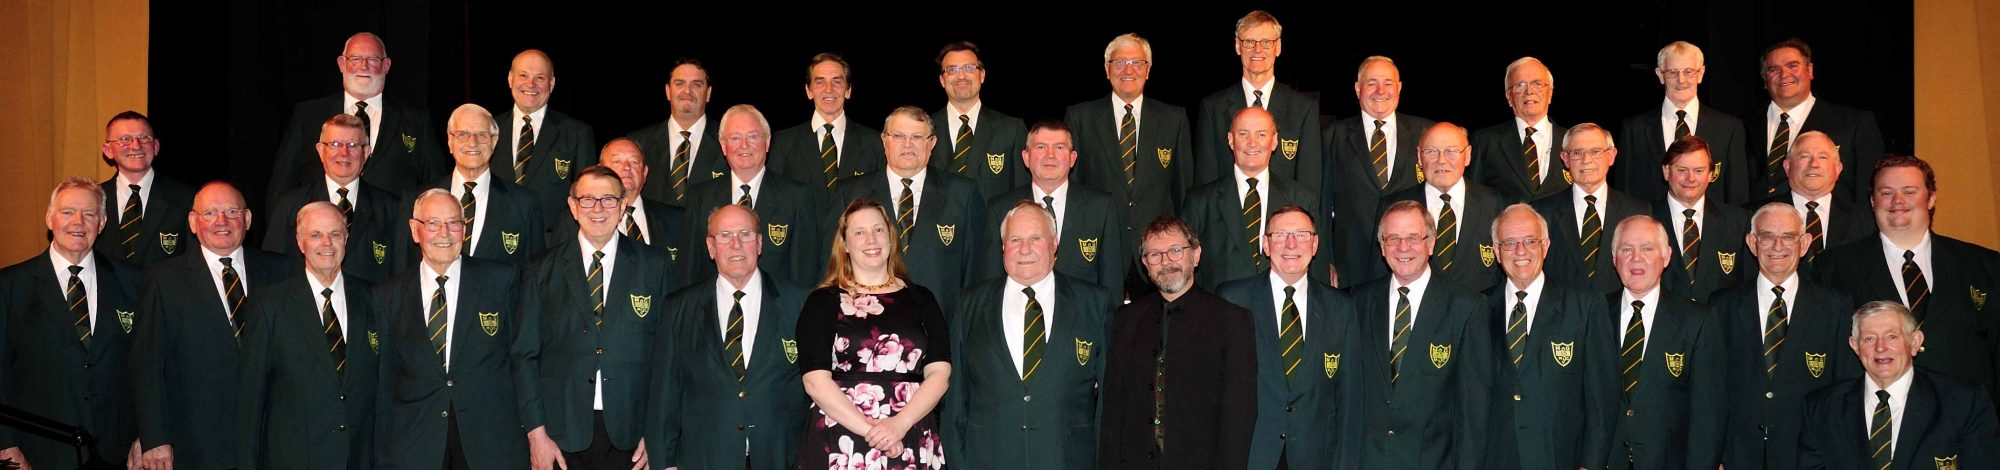 Millhouse Green Male Voice Choir